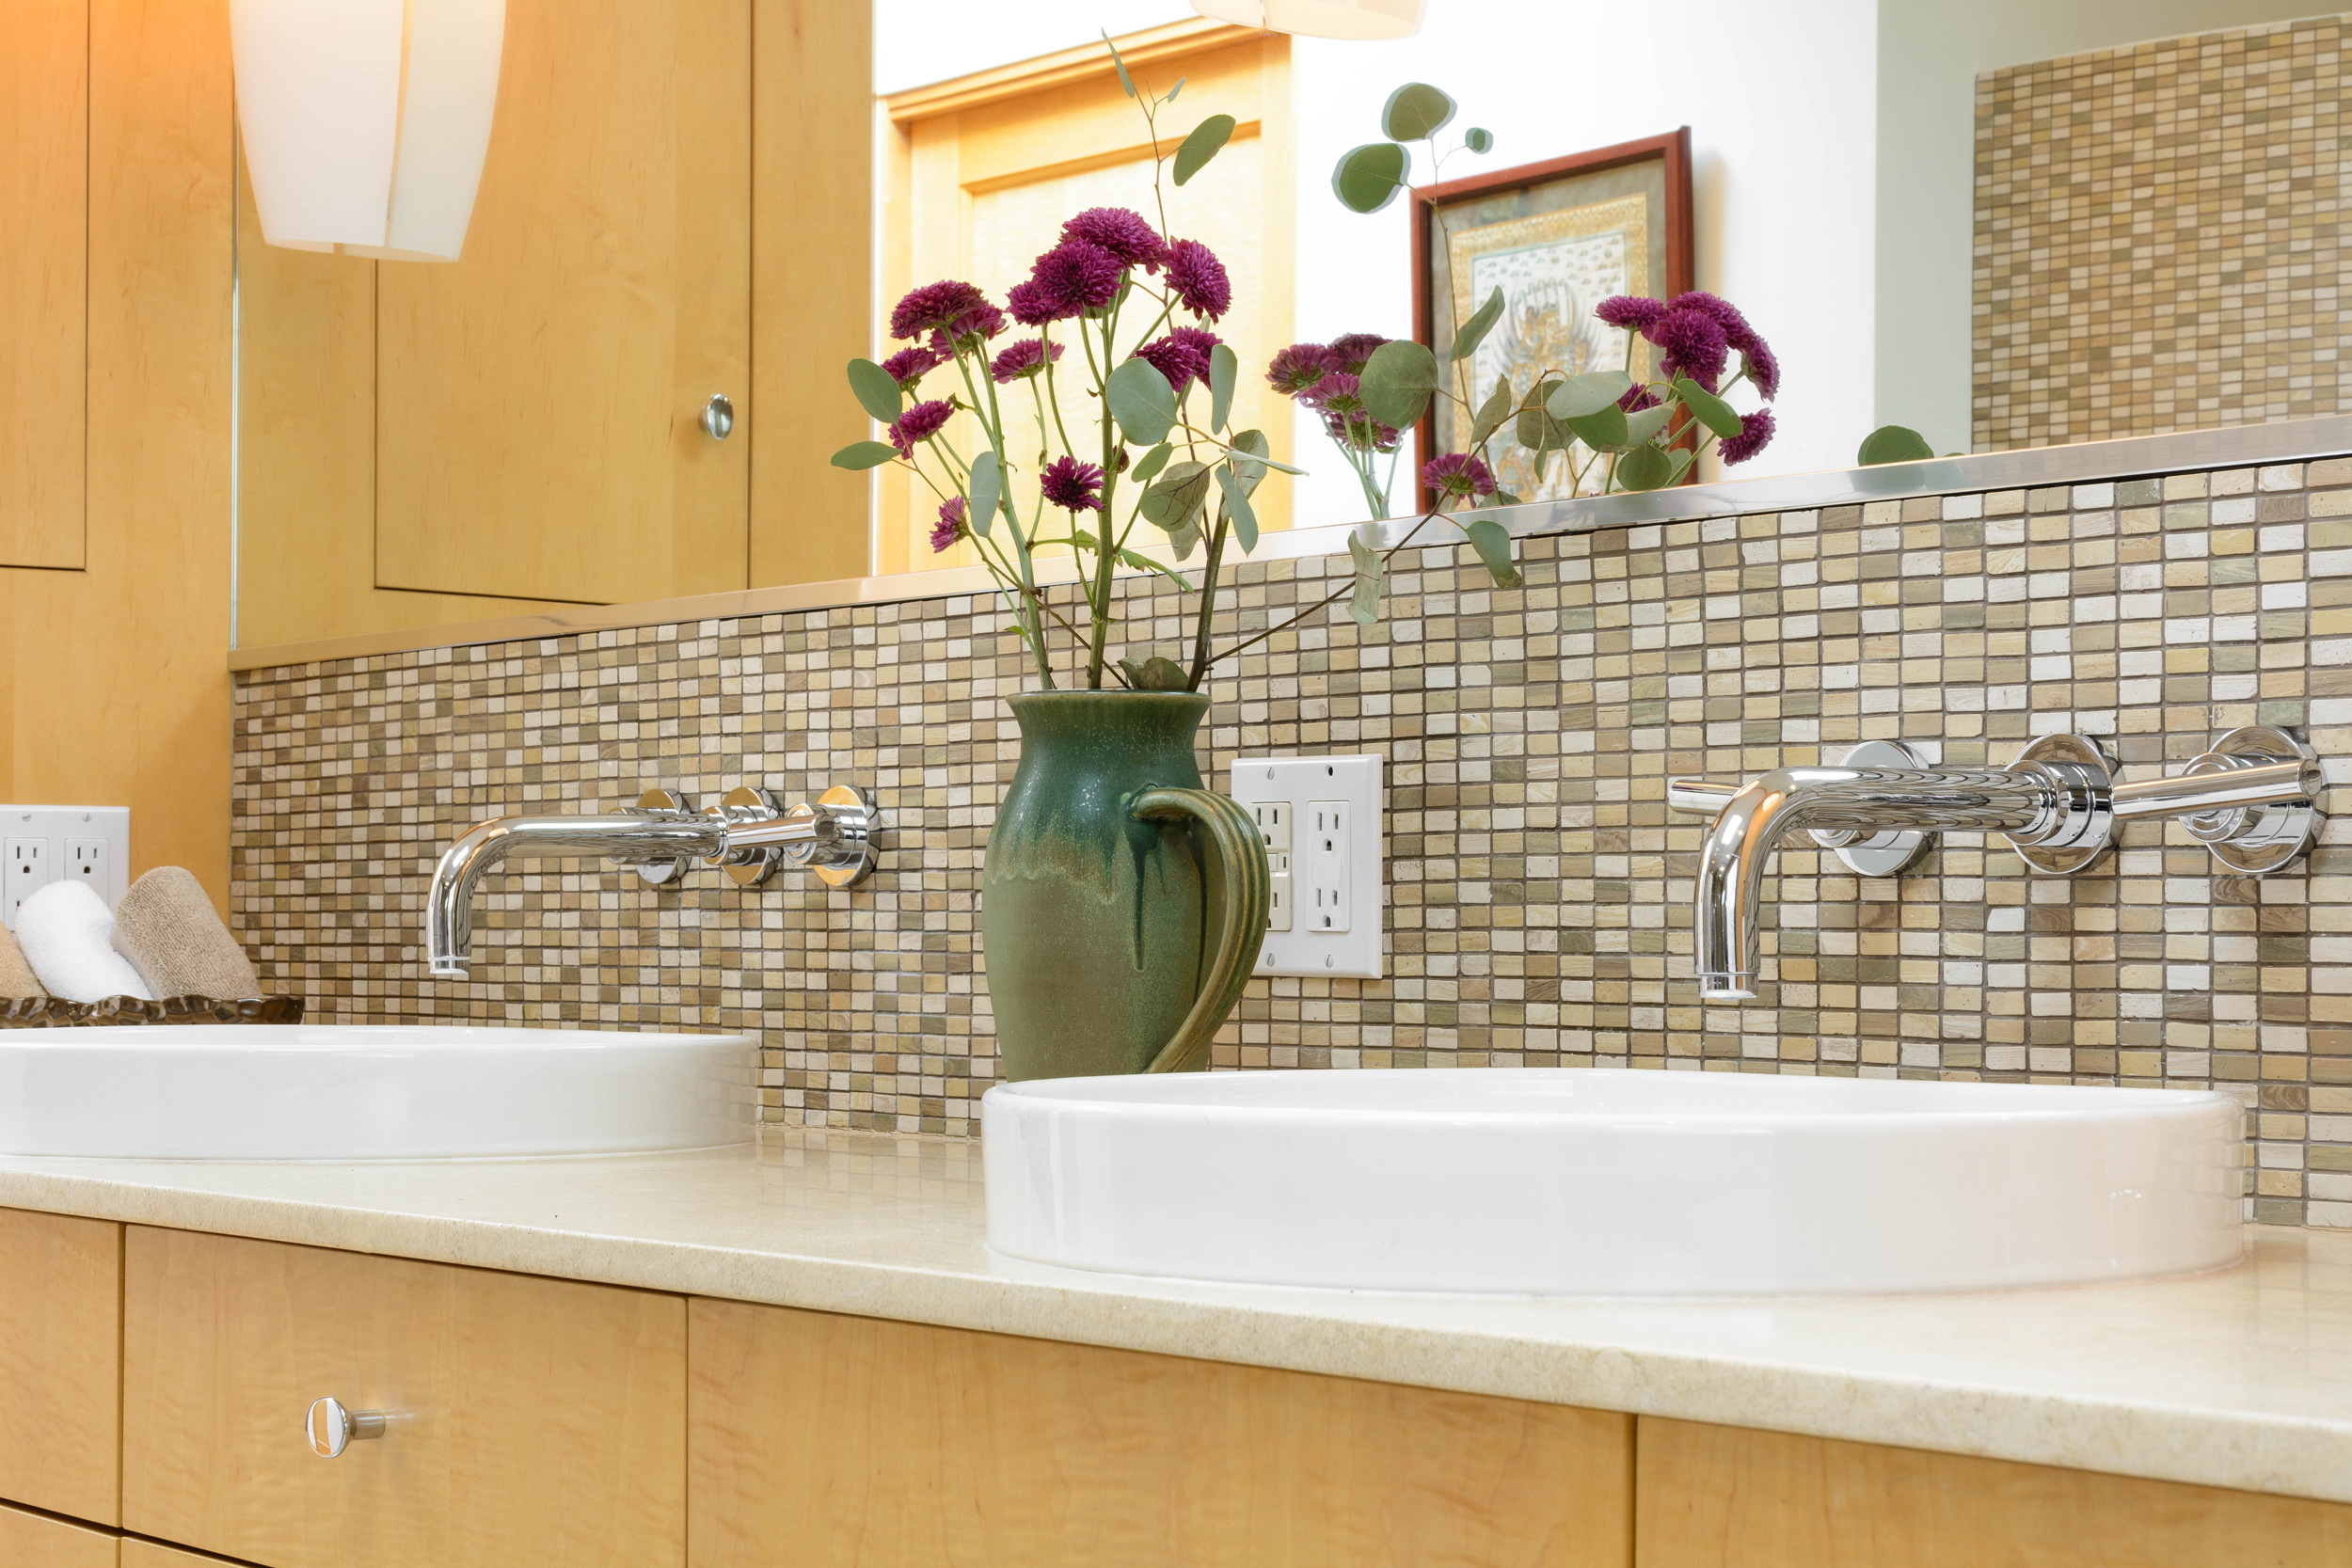 Master bathroom white double vessel sinks with sleek wall-mounted widespread faucets on mosaic tile backsplash